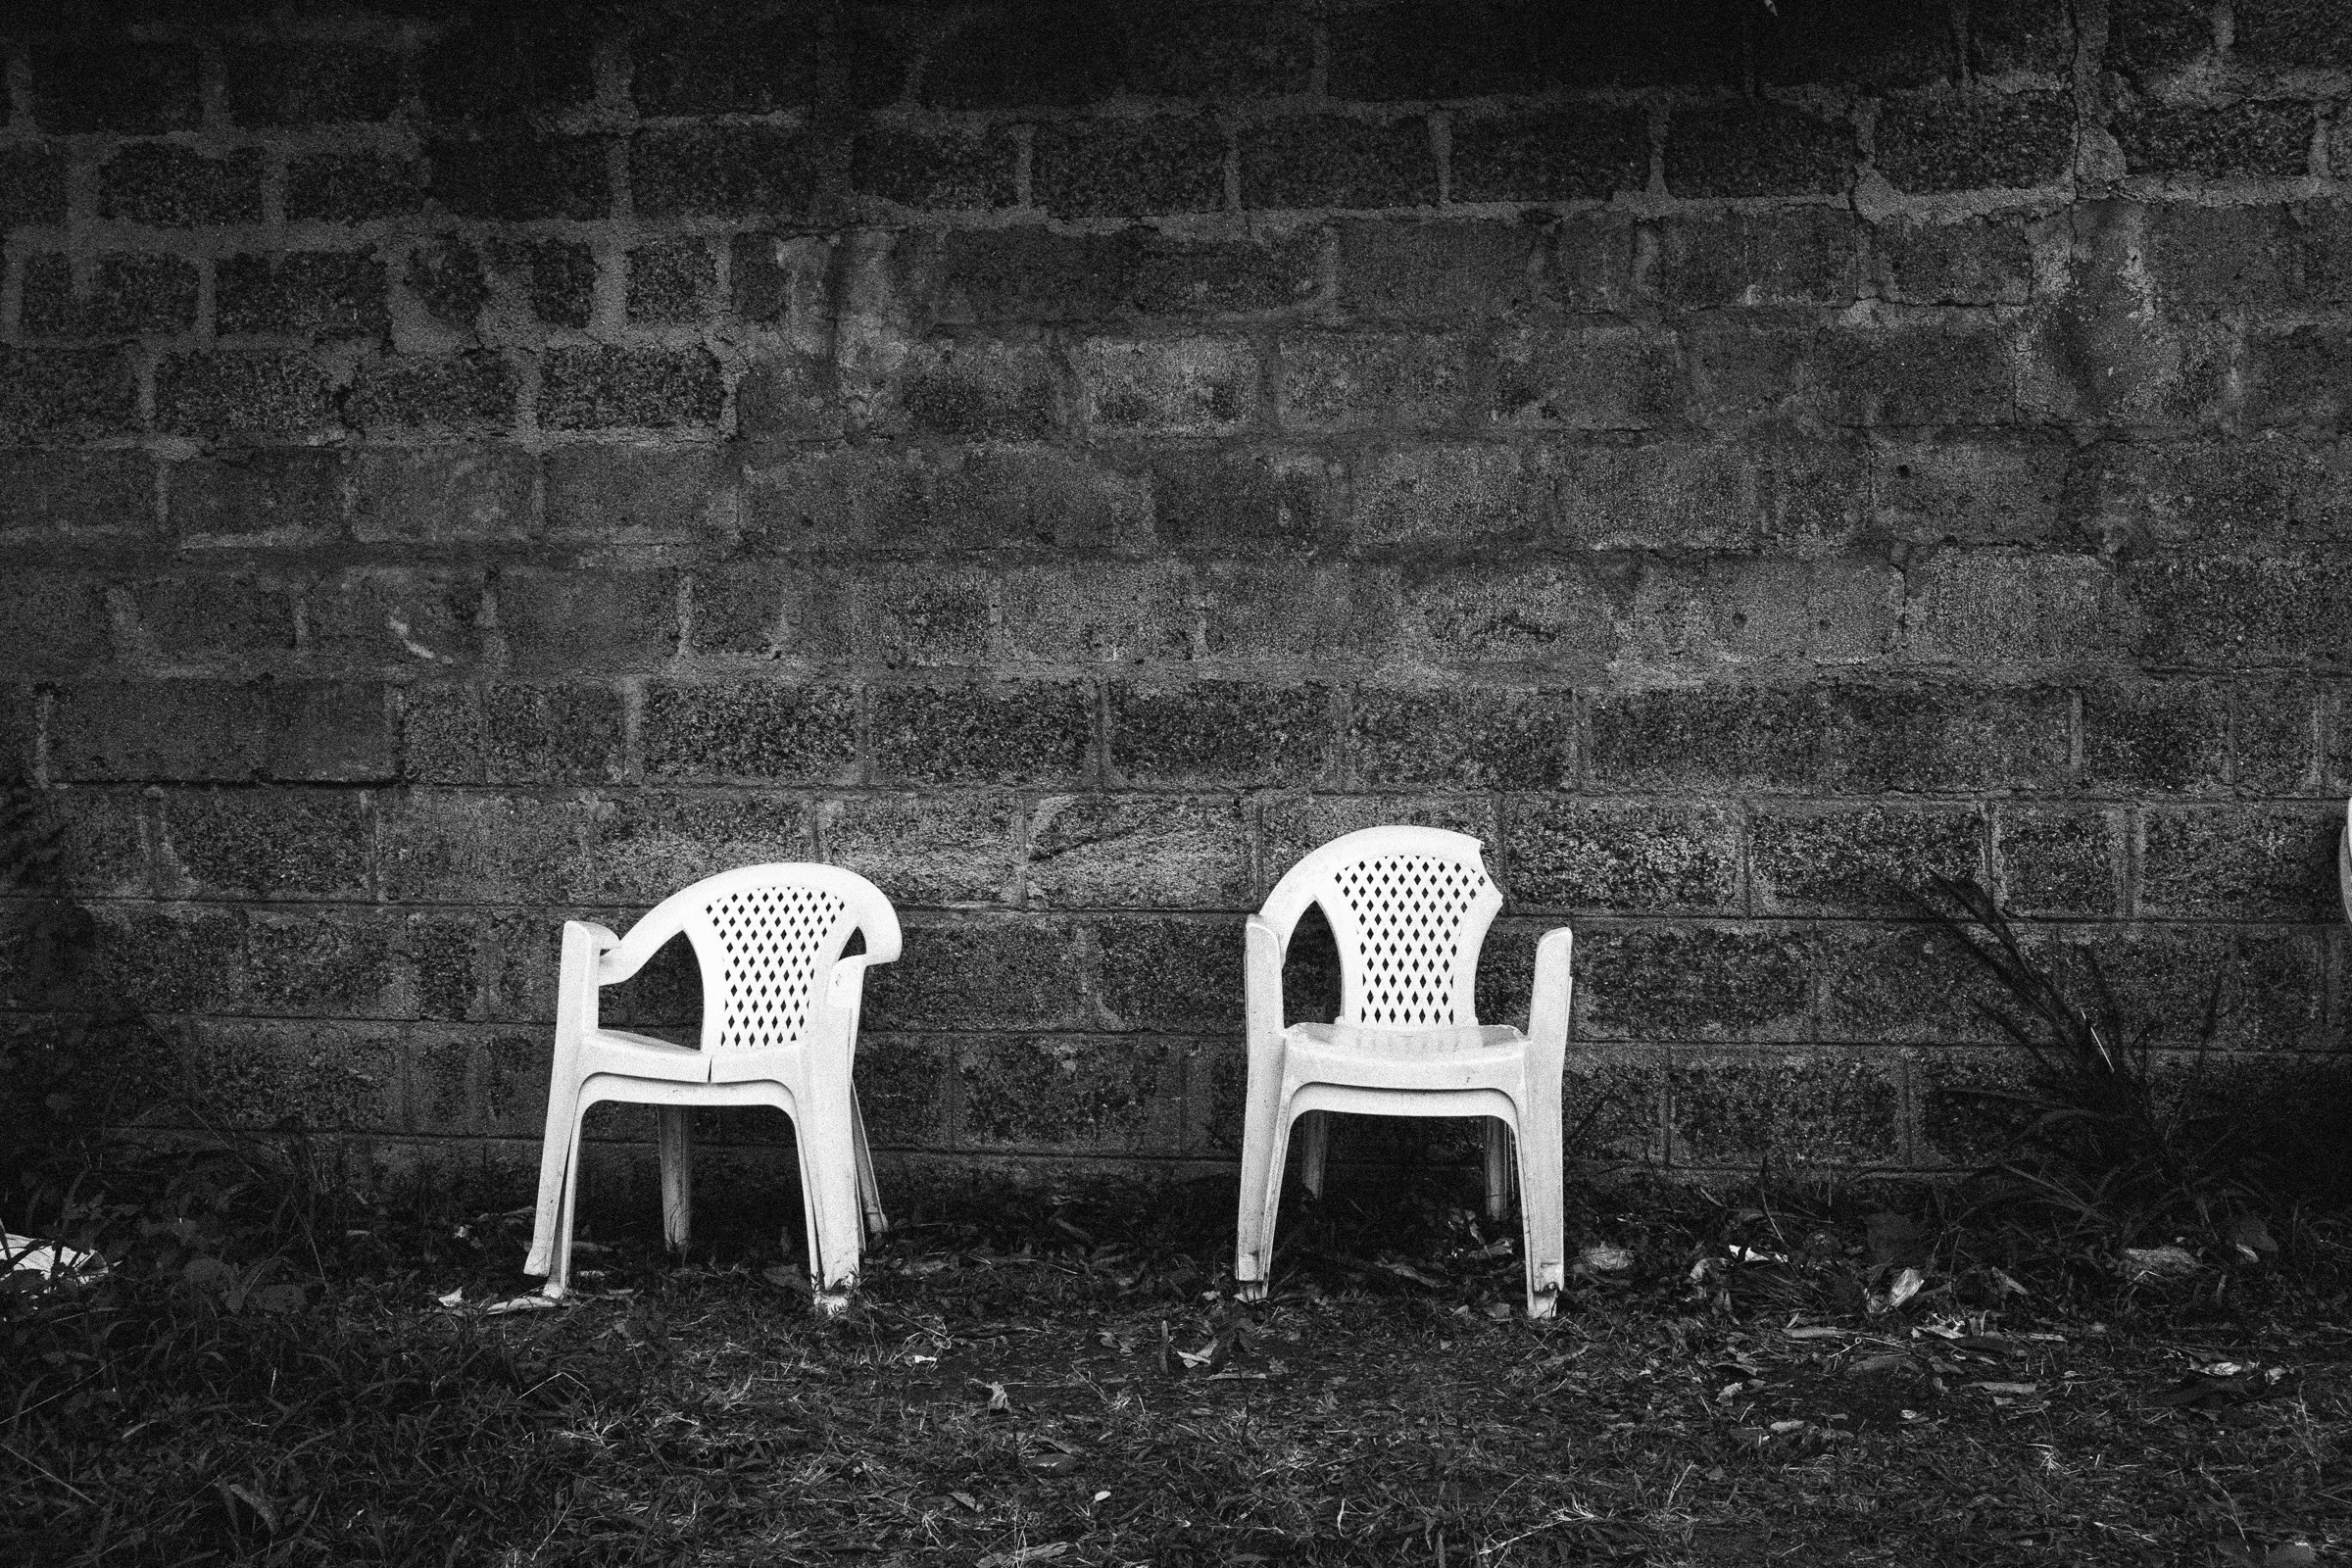 Leyla Jeyte, two chairs, 2016. Courtesy of the artist